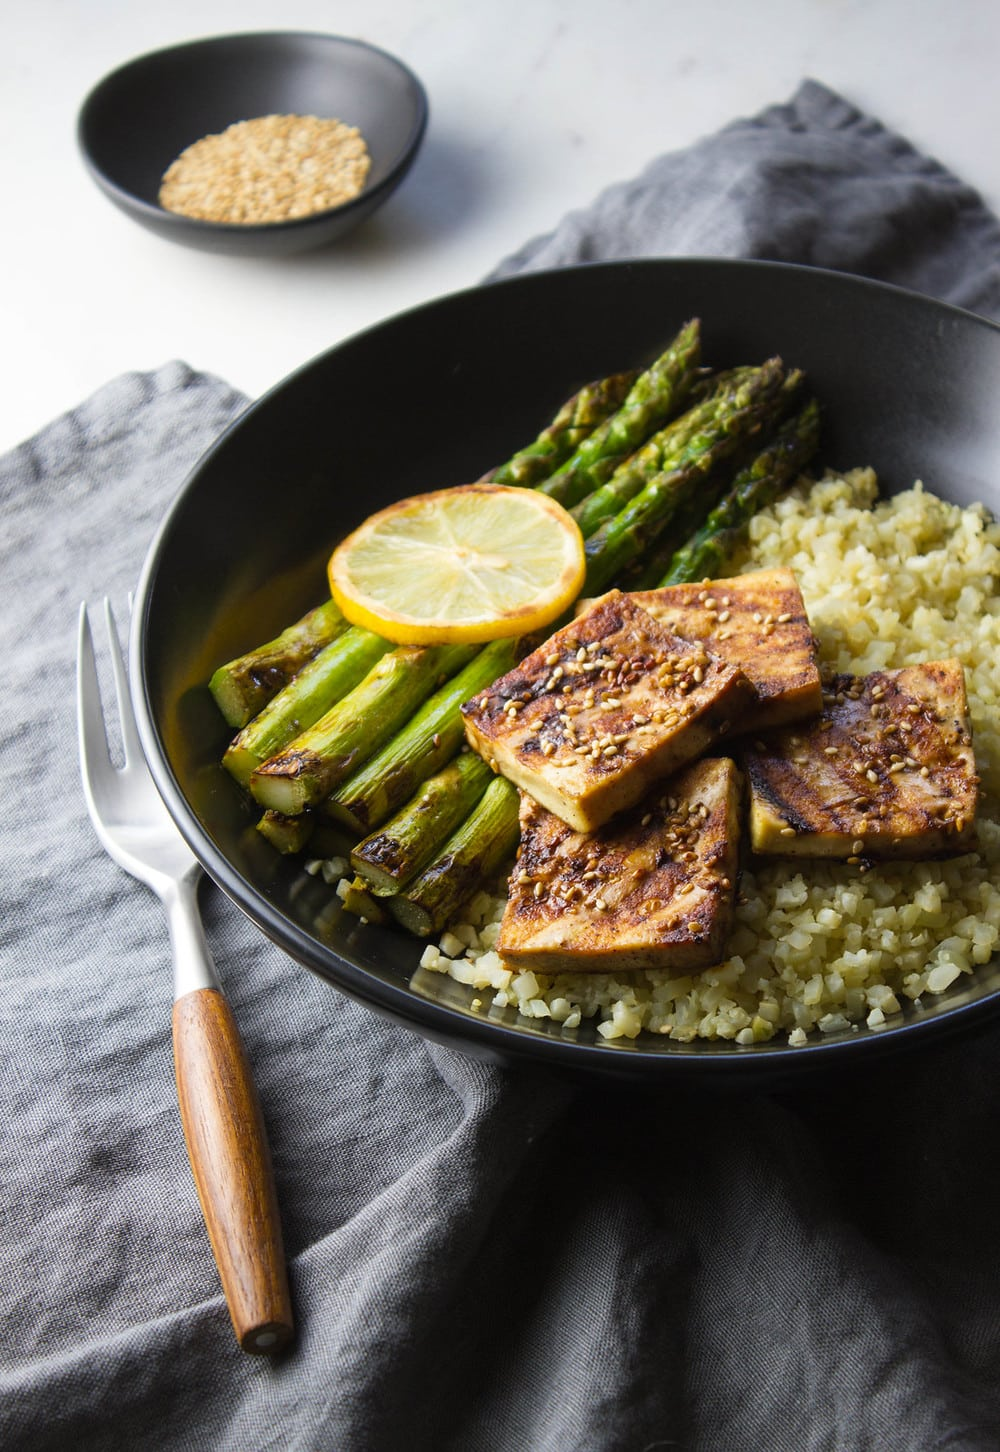 grilled tofu and asparagus with ginger cauliflower rice served in a black bowl